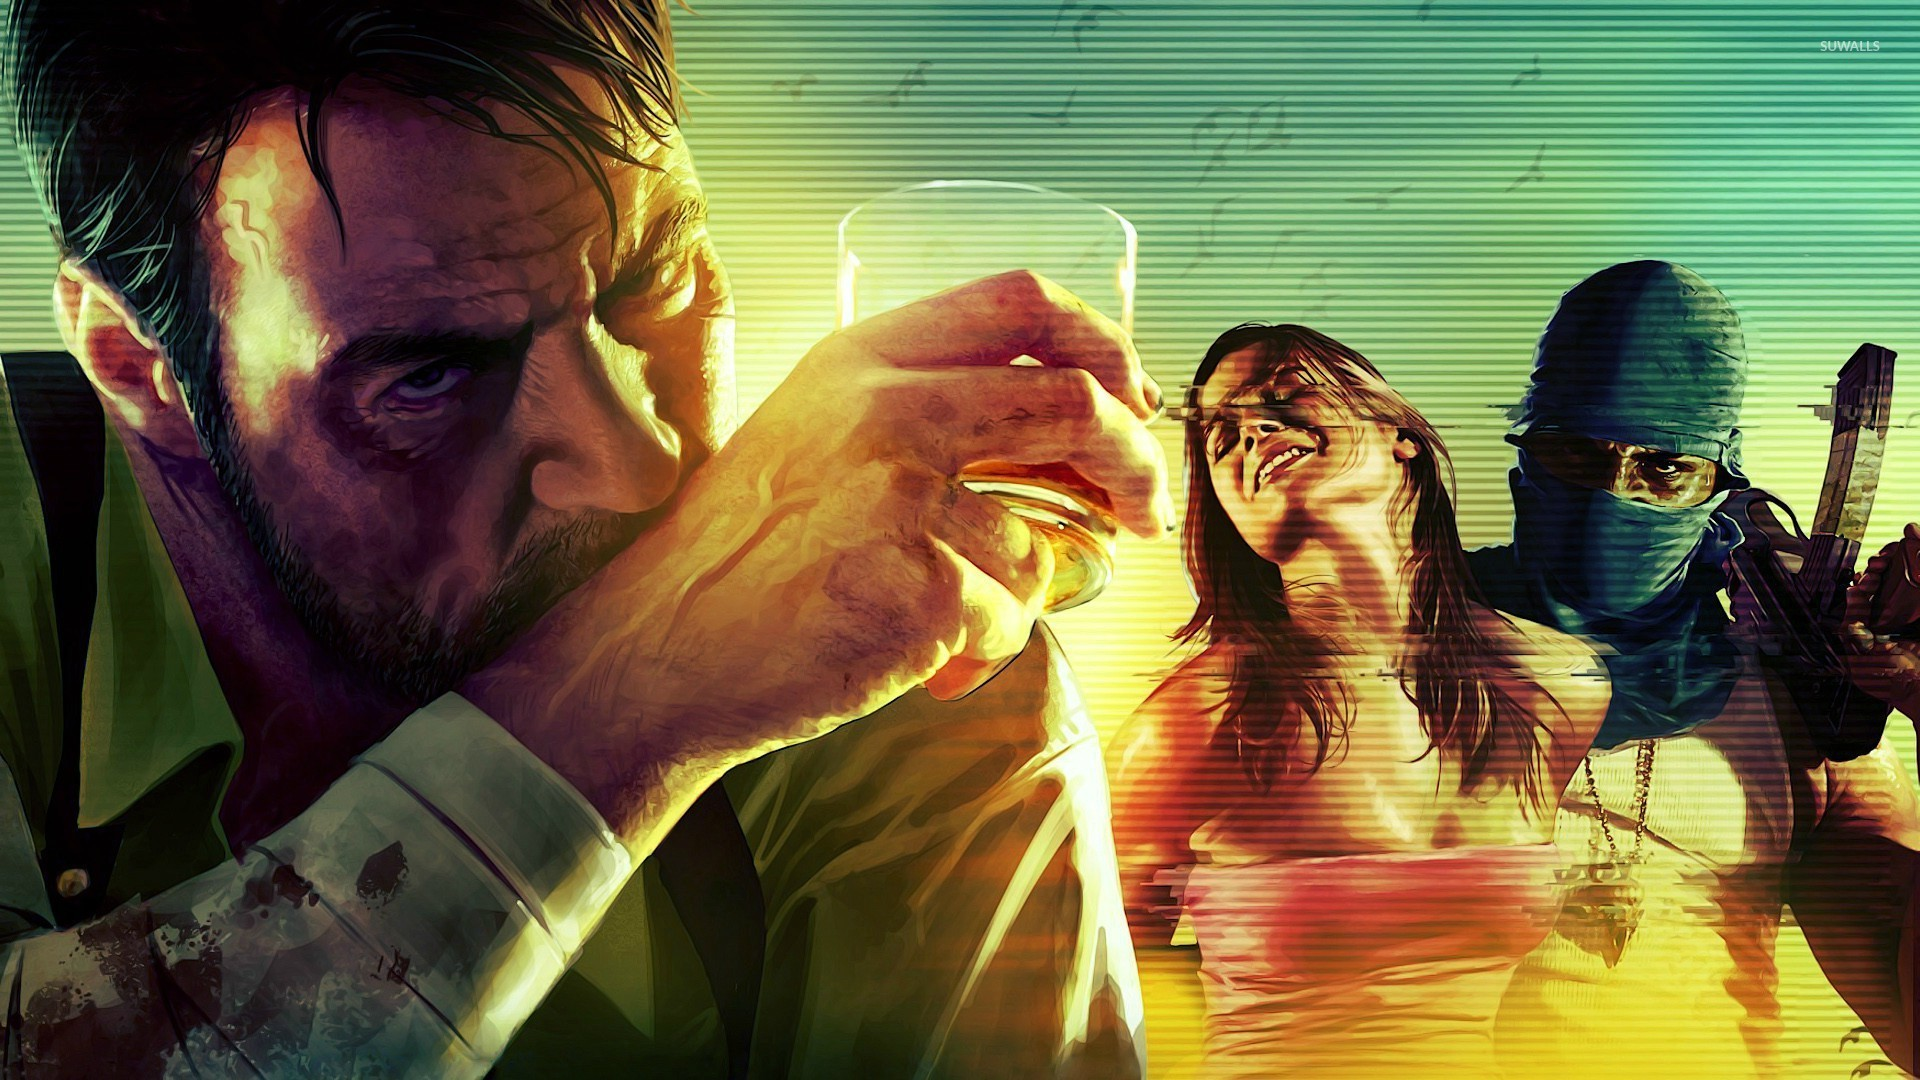 48 Max Payne 3 Wallpaper 1920x1080 On Wallpapersafari